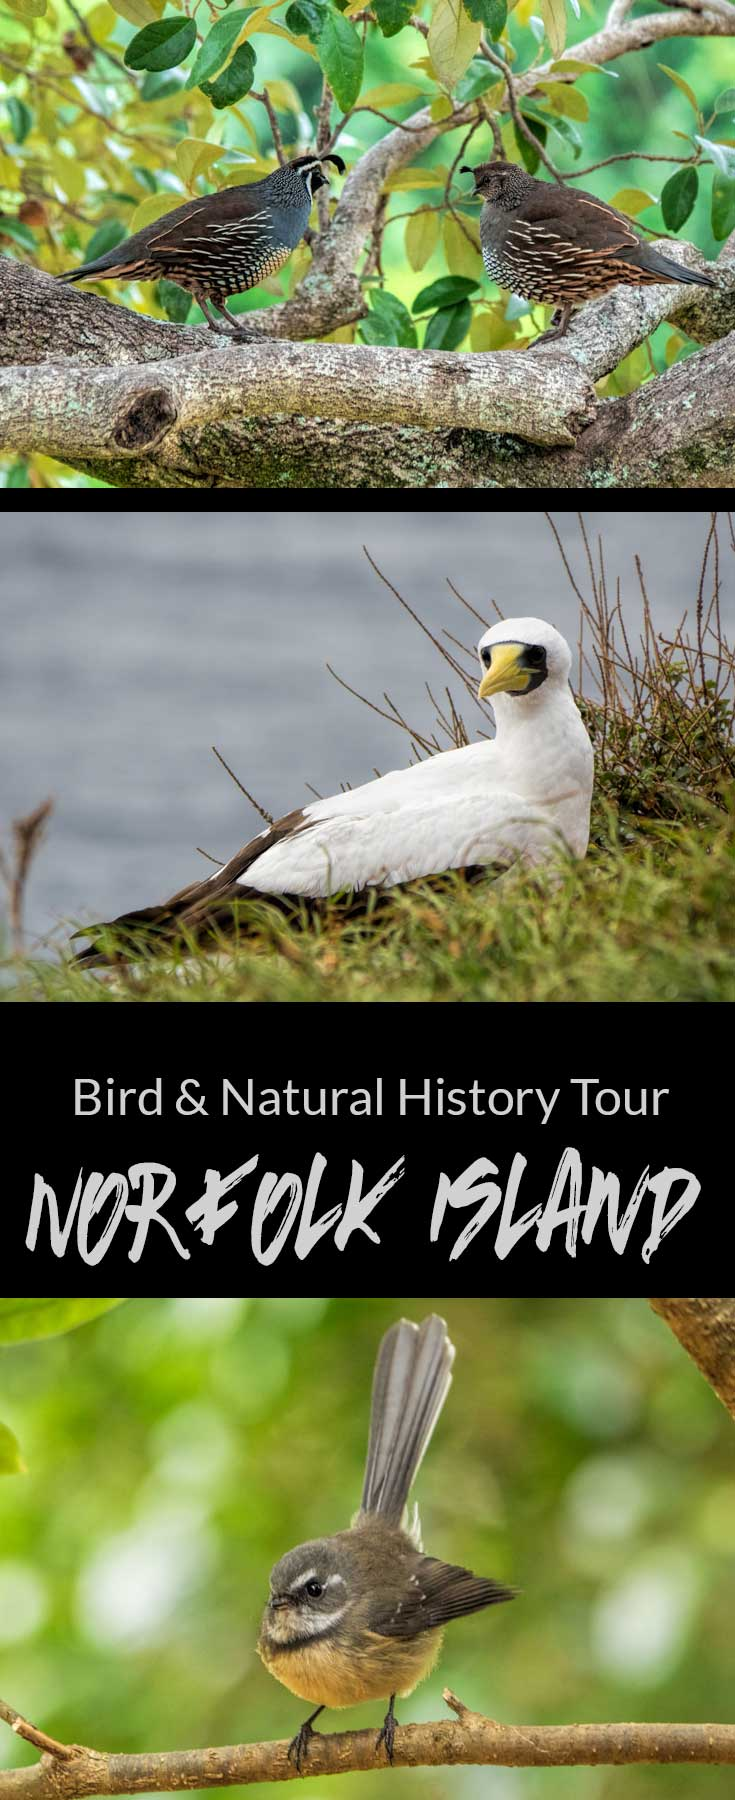 Birds and Natural History Tour, Norfolk Island, Australia